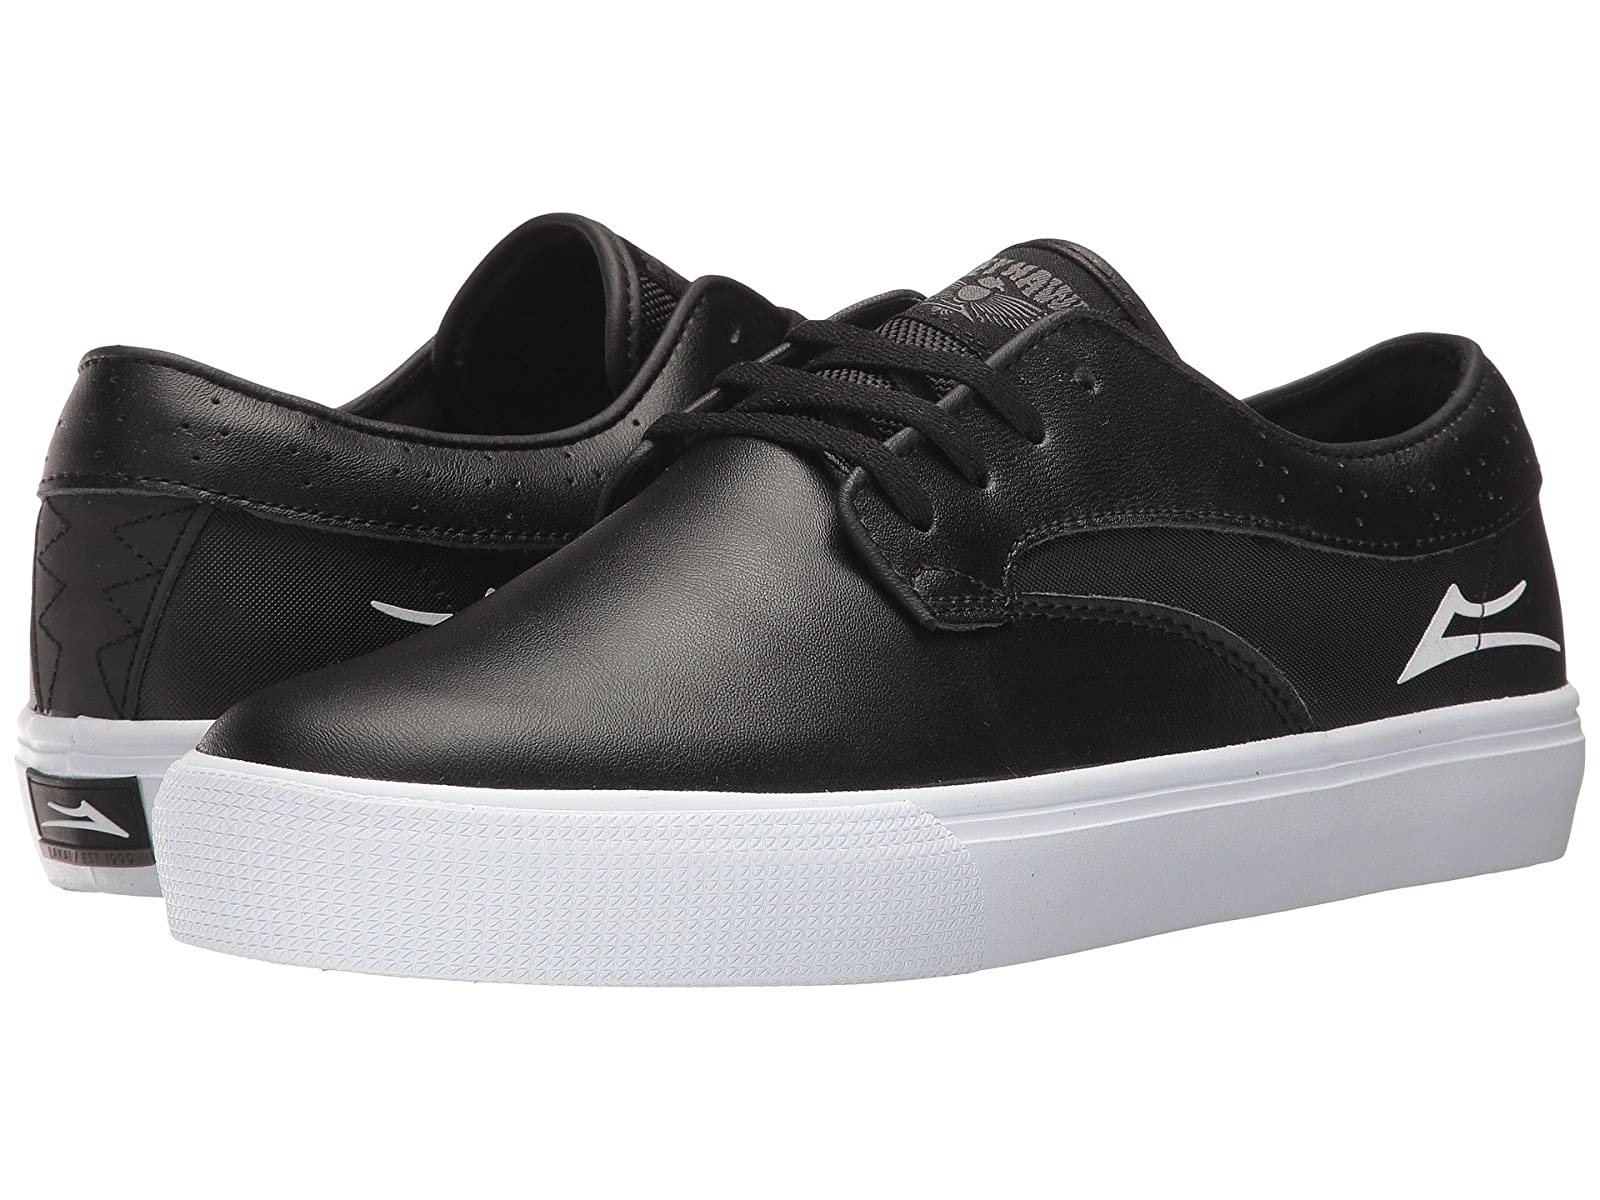 Lakai Riley HawkCheap and distinctive eye-catching shoes